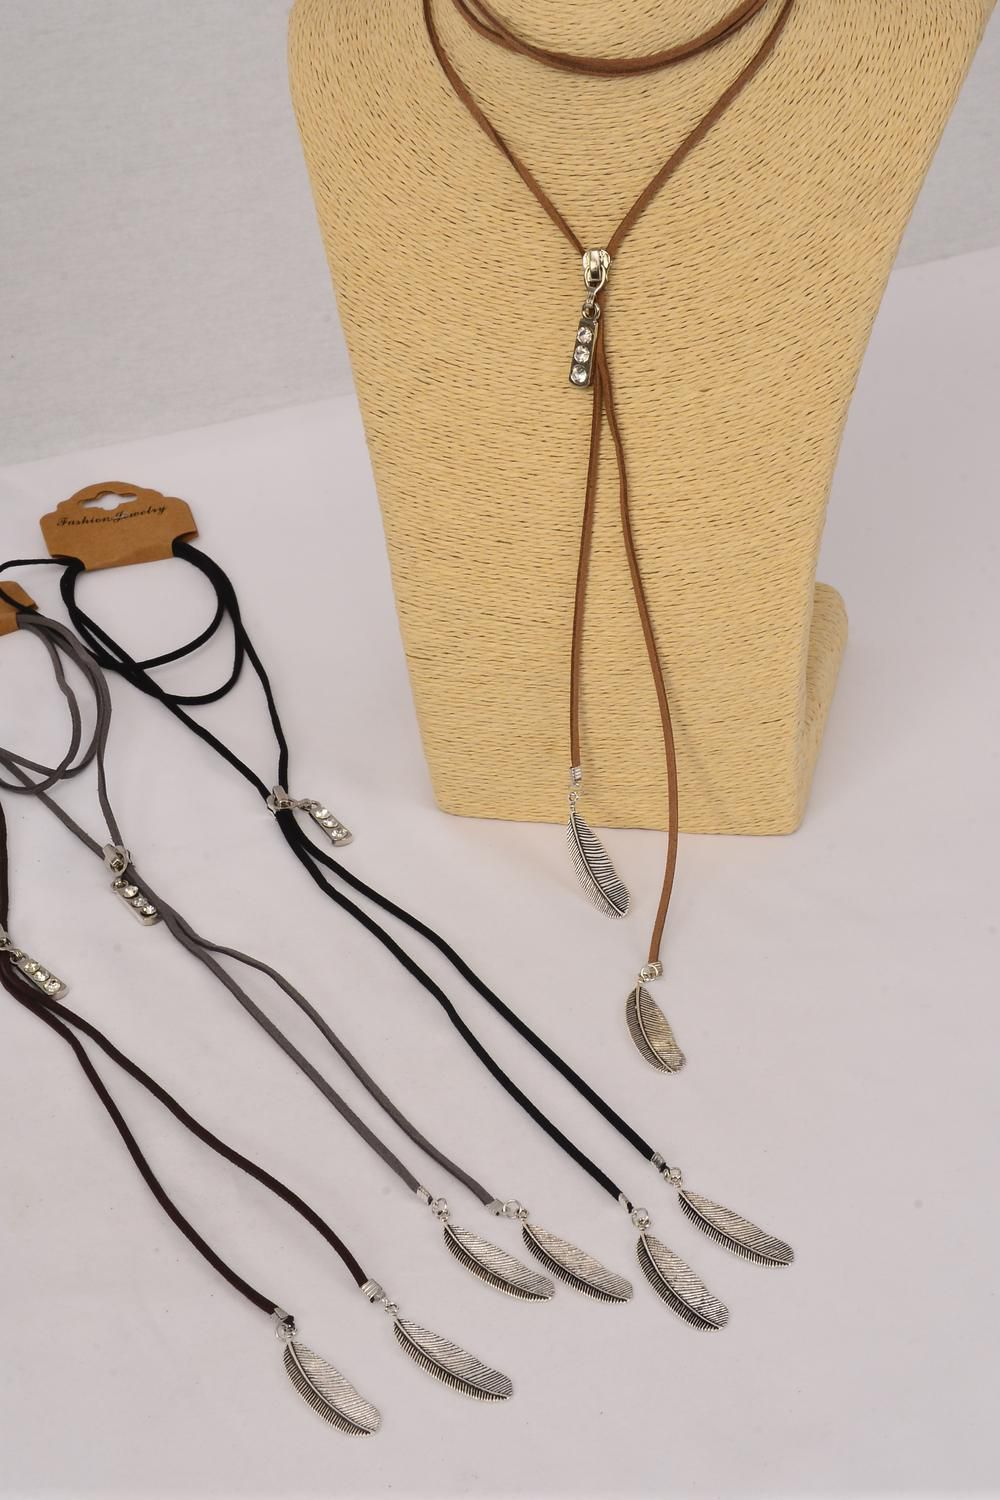 Necklace Faux Suede Cord String Wrap Bolo Tie Choker Rhinestone Zip Feathers/DZ **Multi** 3 Black,3 Brown,3 Gray,3 White,4 Color Asst,Display Card & OPP Bag & UPC Code